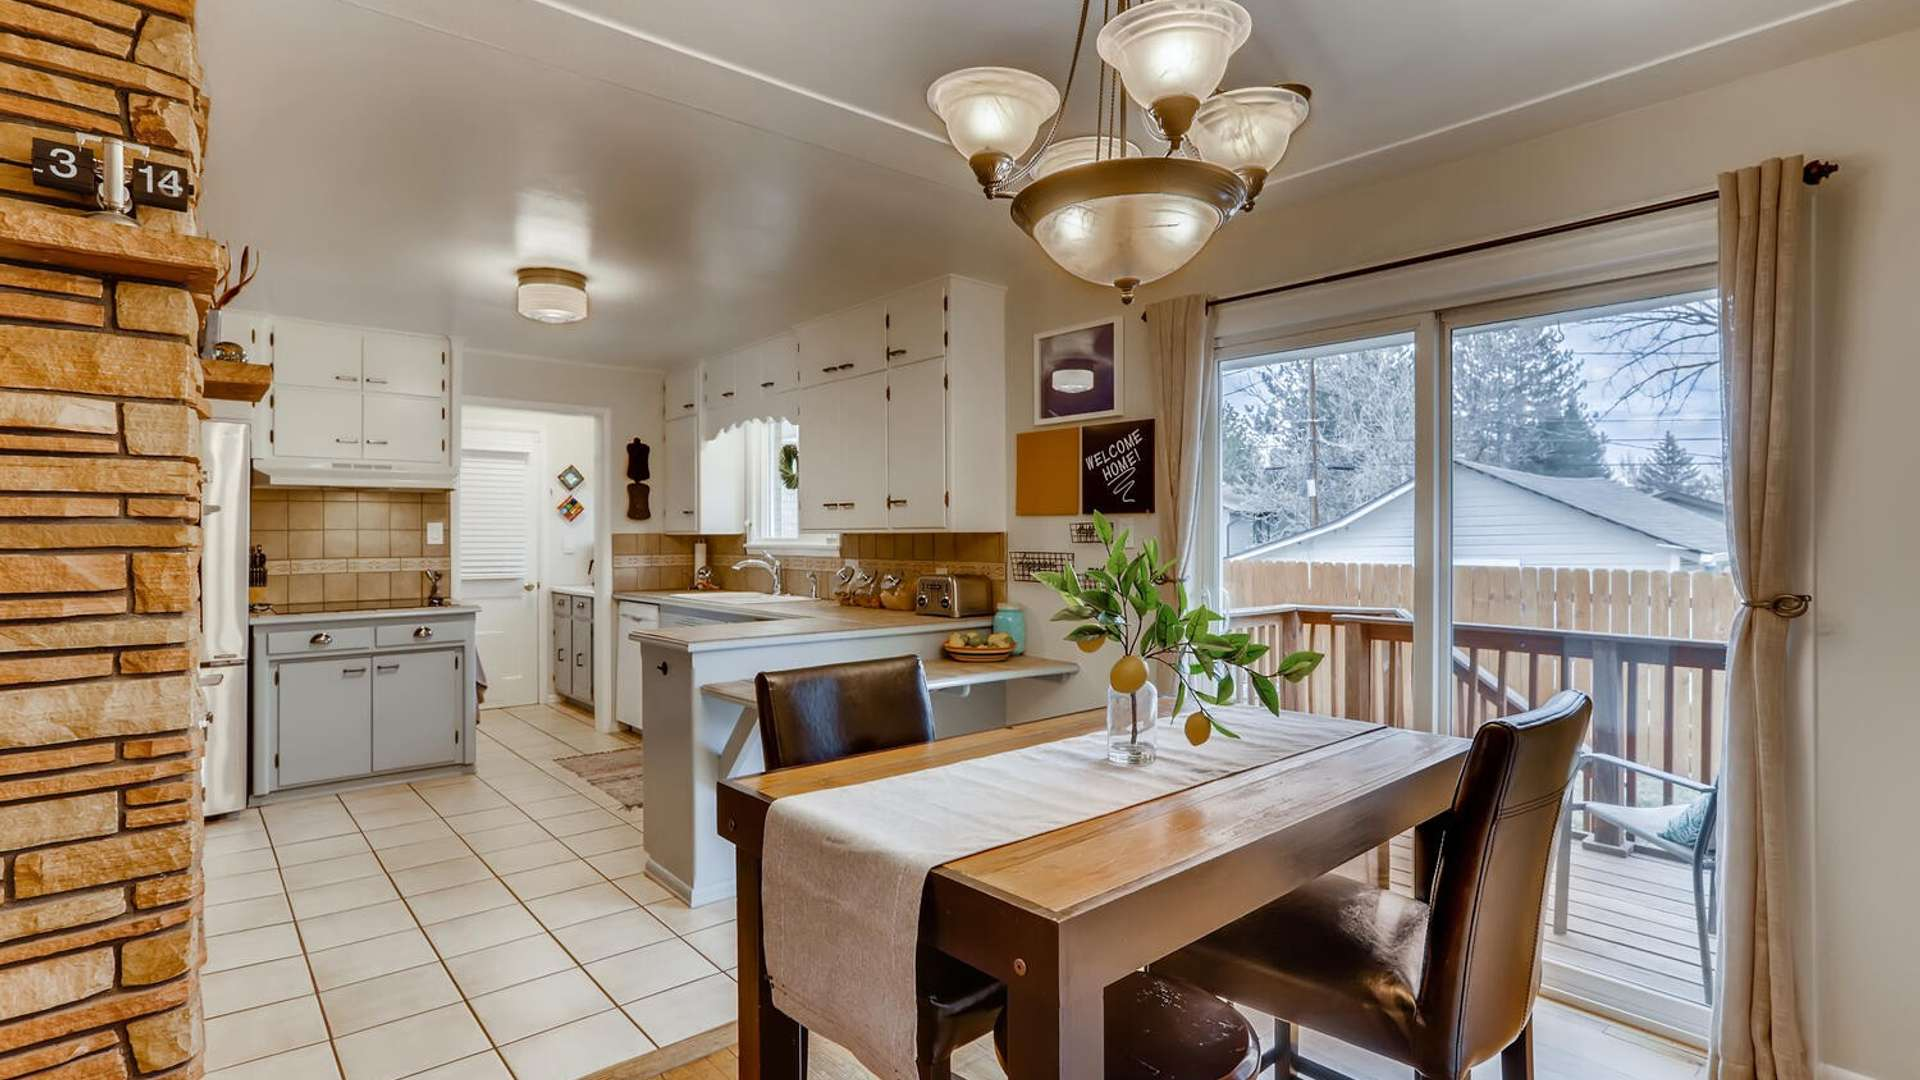 11 of 38. Dining room with sliding glass door to private backyard